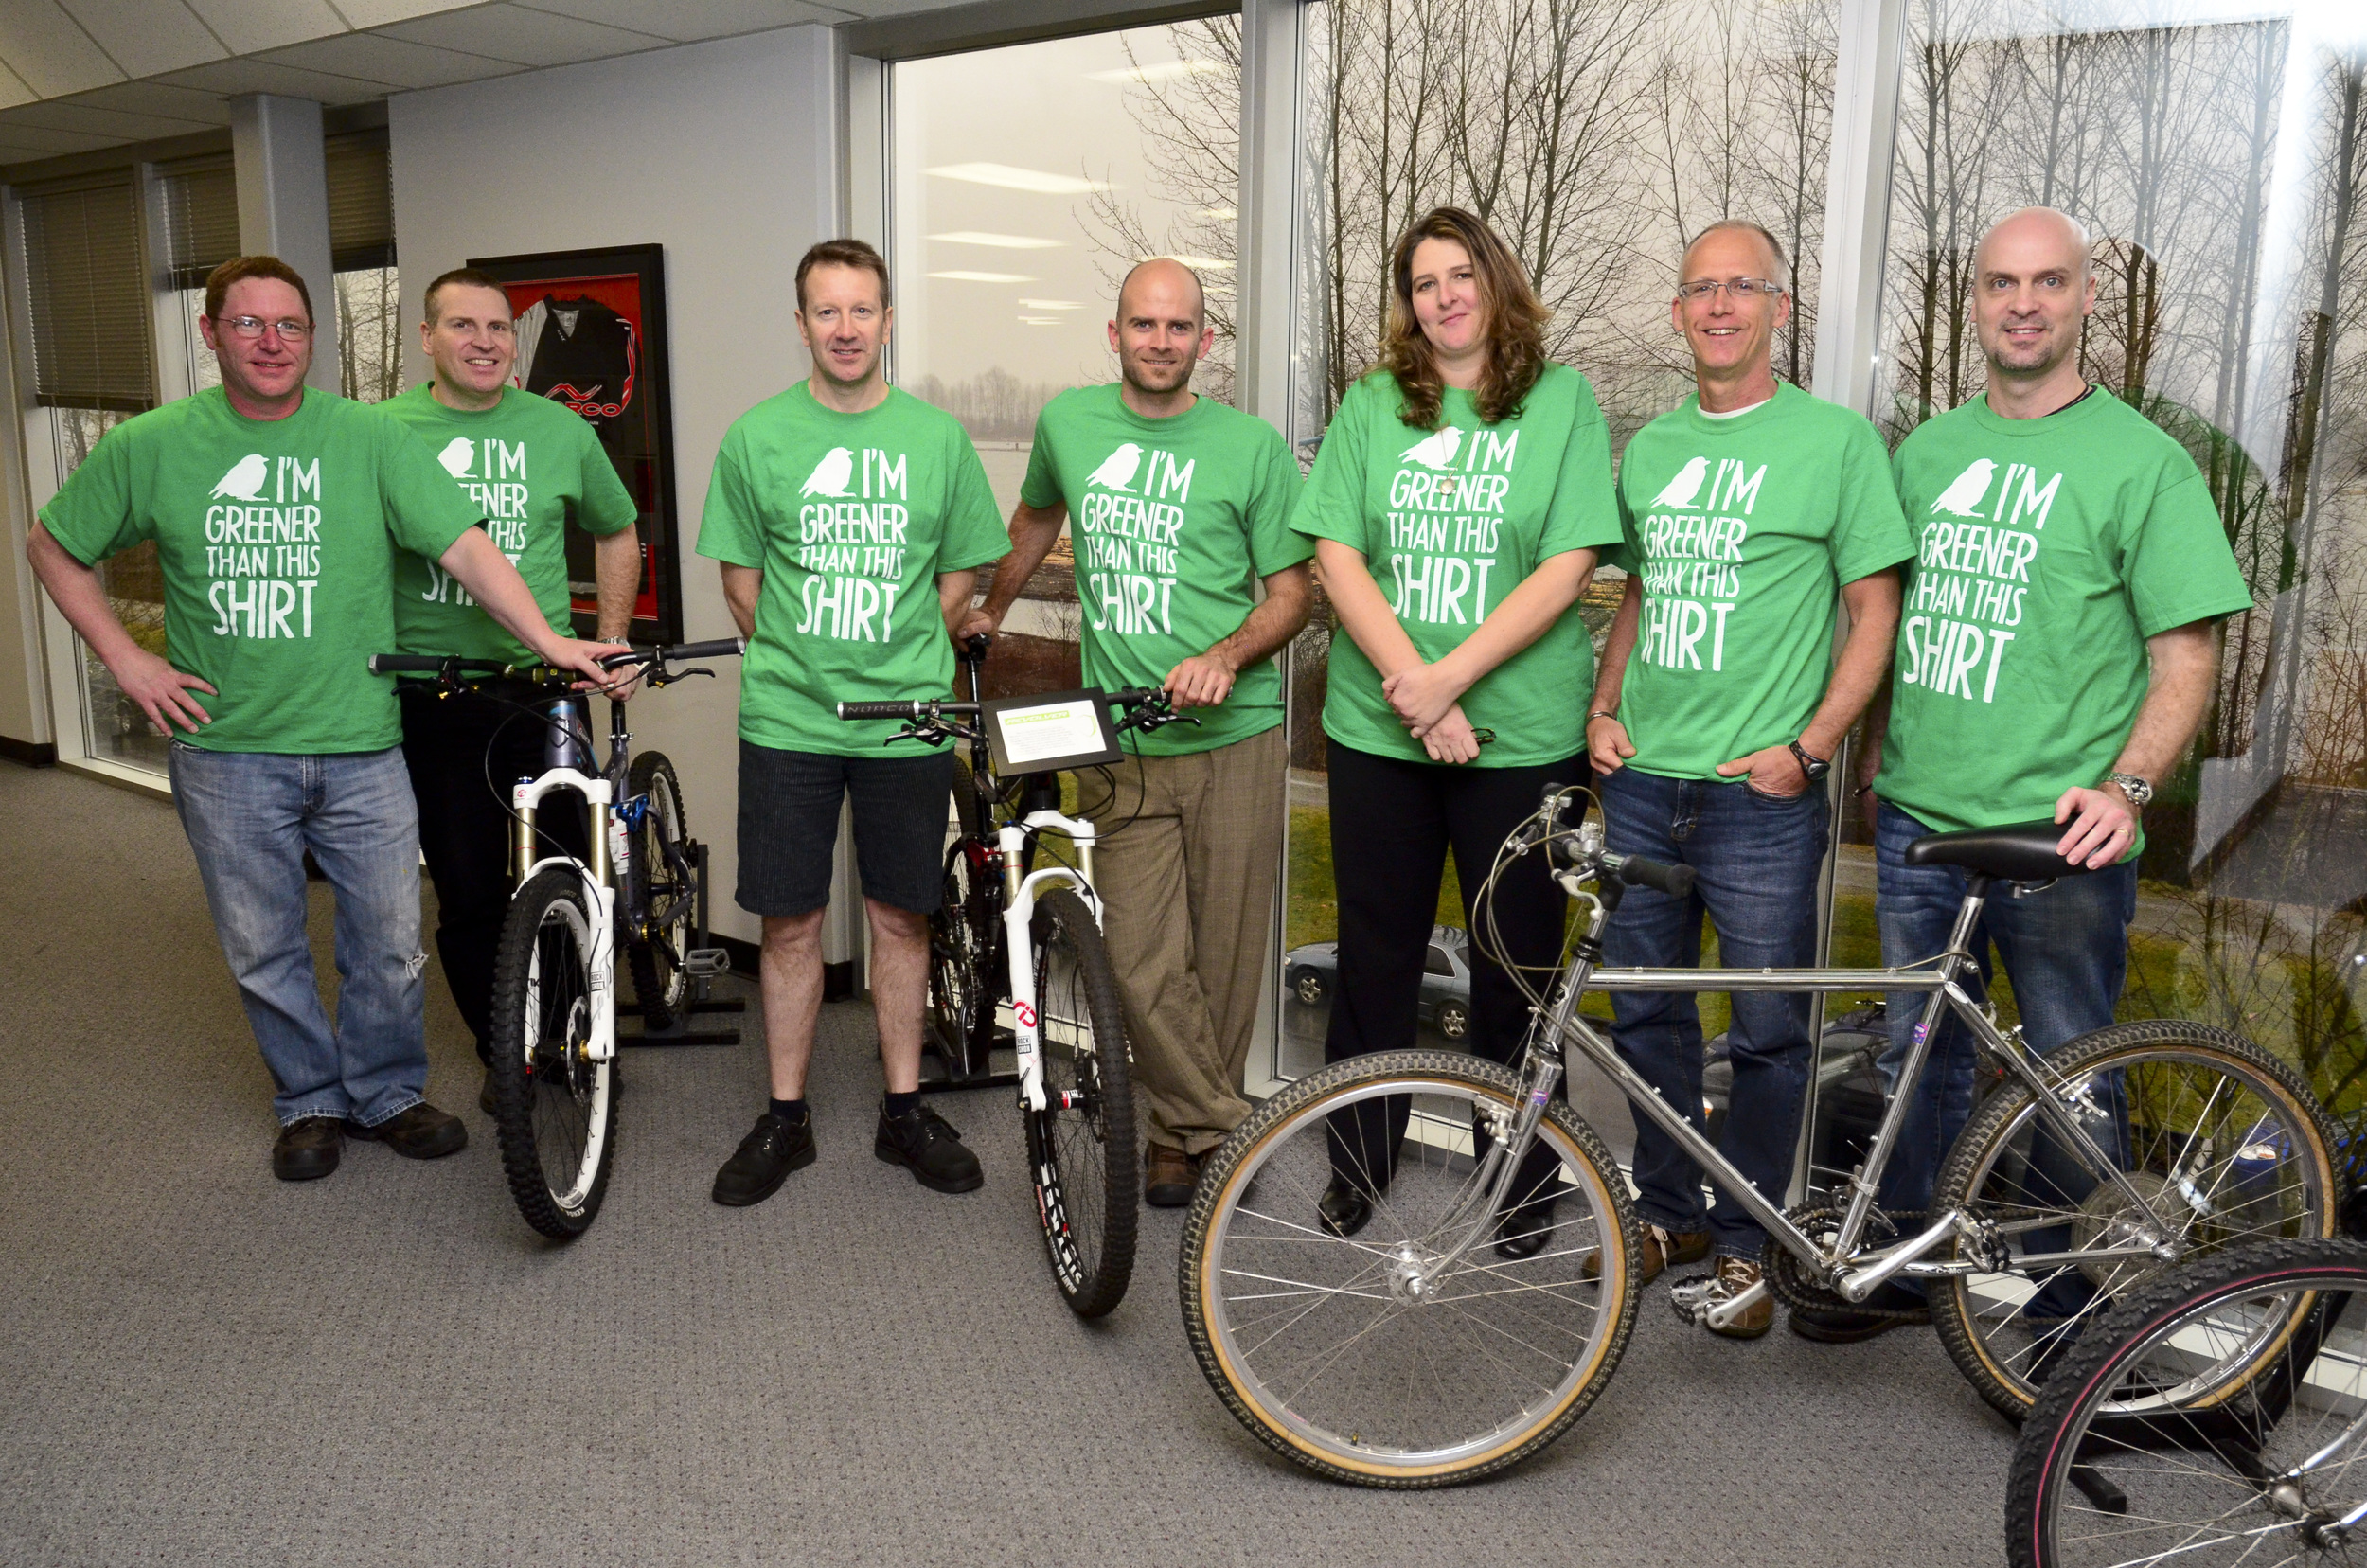 """"""" Norco Green Team """" BY  Norco Bicycles  IS LICENSED UNDER  CC BY-SA 2.0 ."""